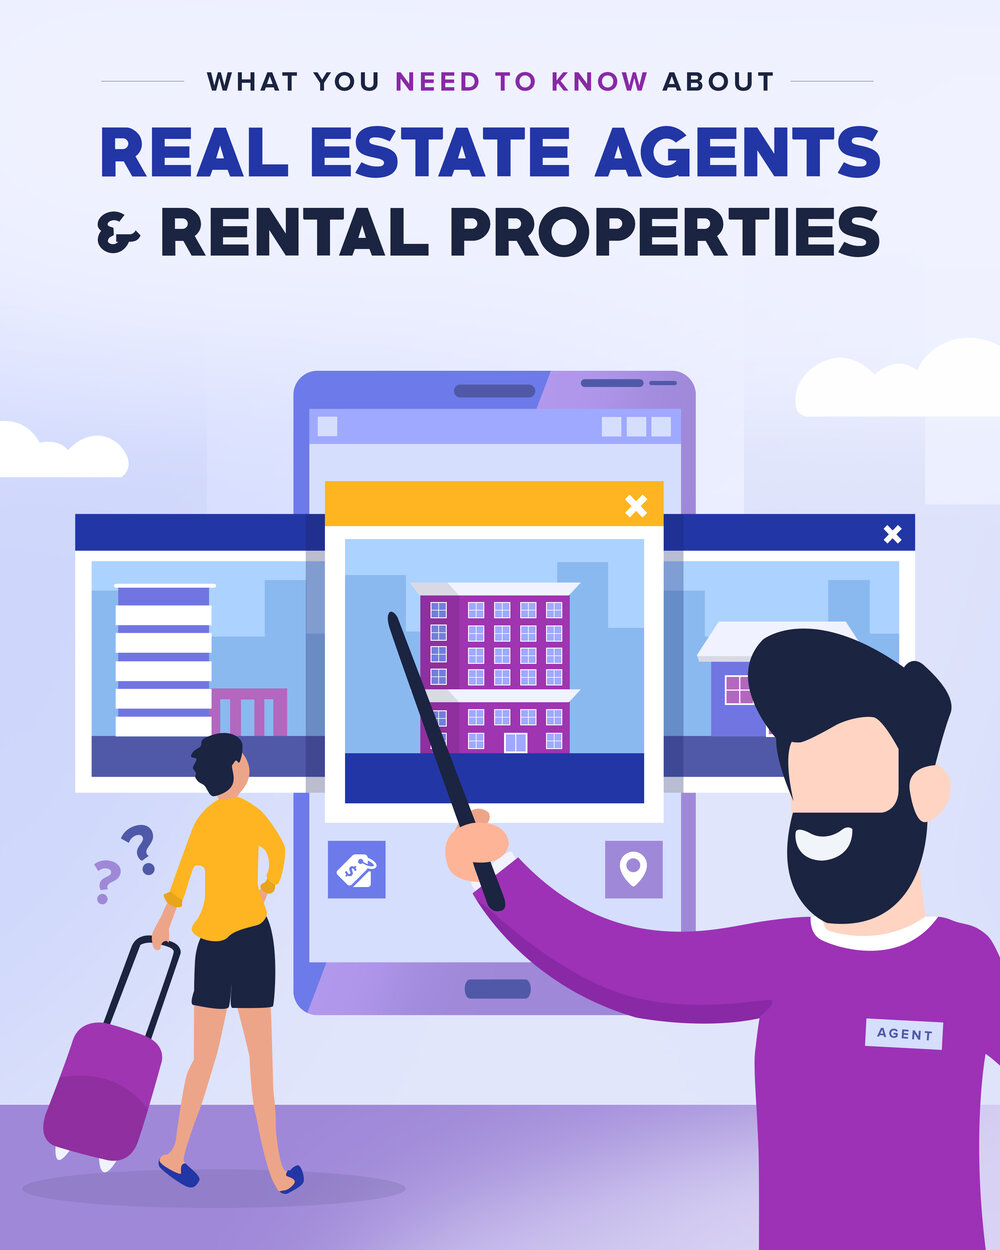 Can You Hire A Real Estate Agent To Help You Find The Perfect Rental Property?